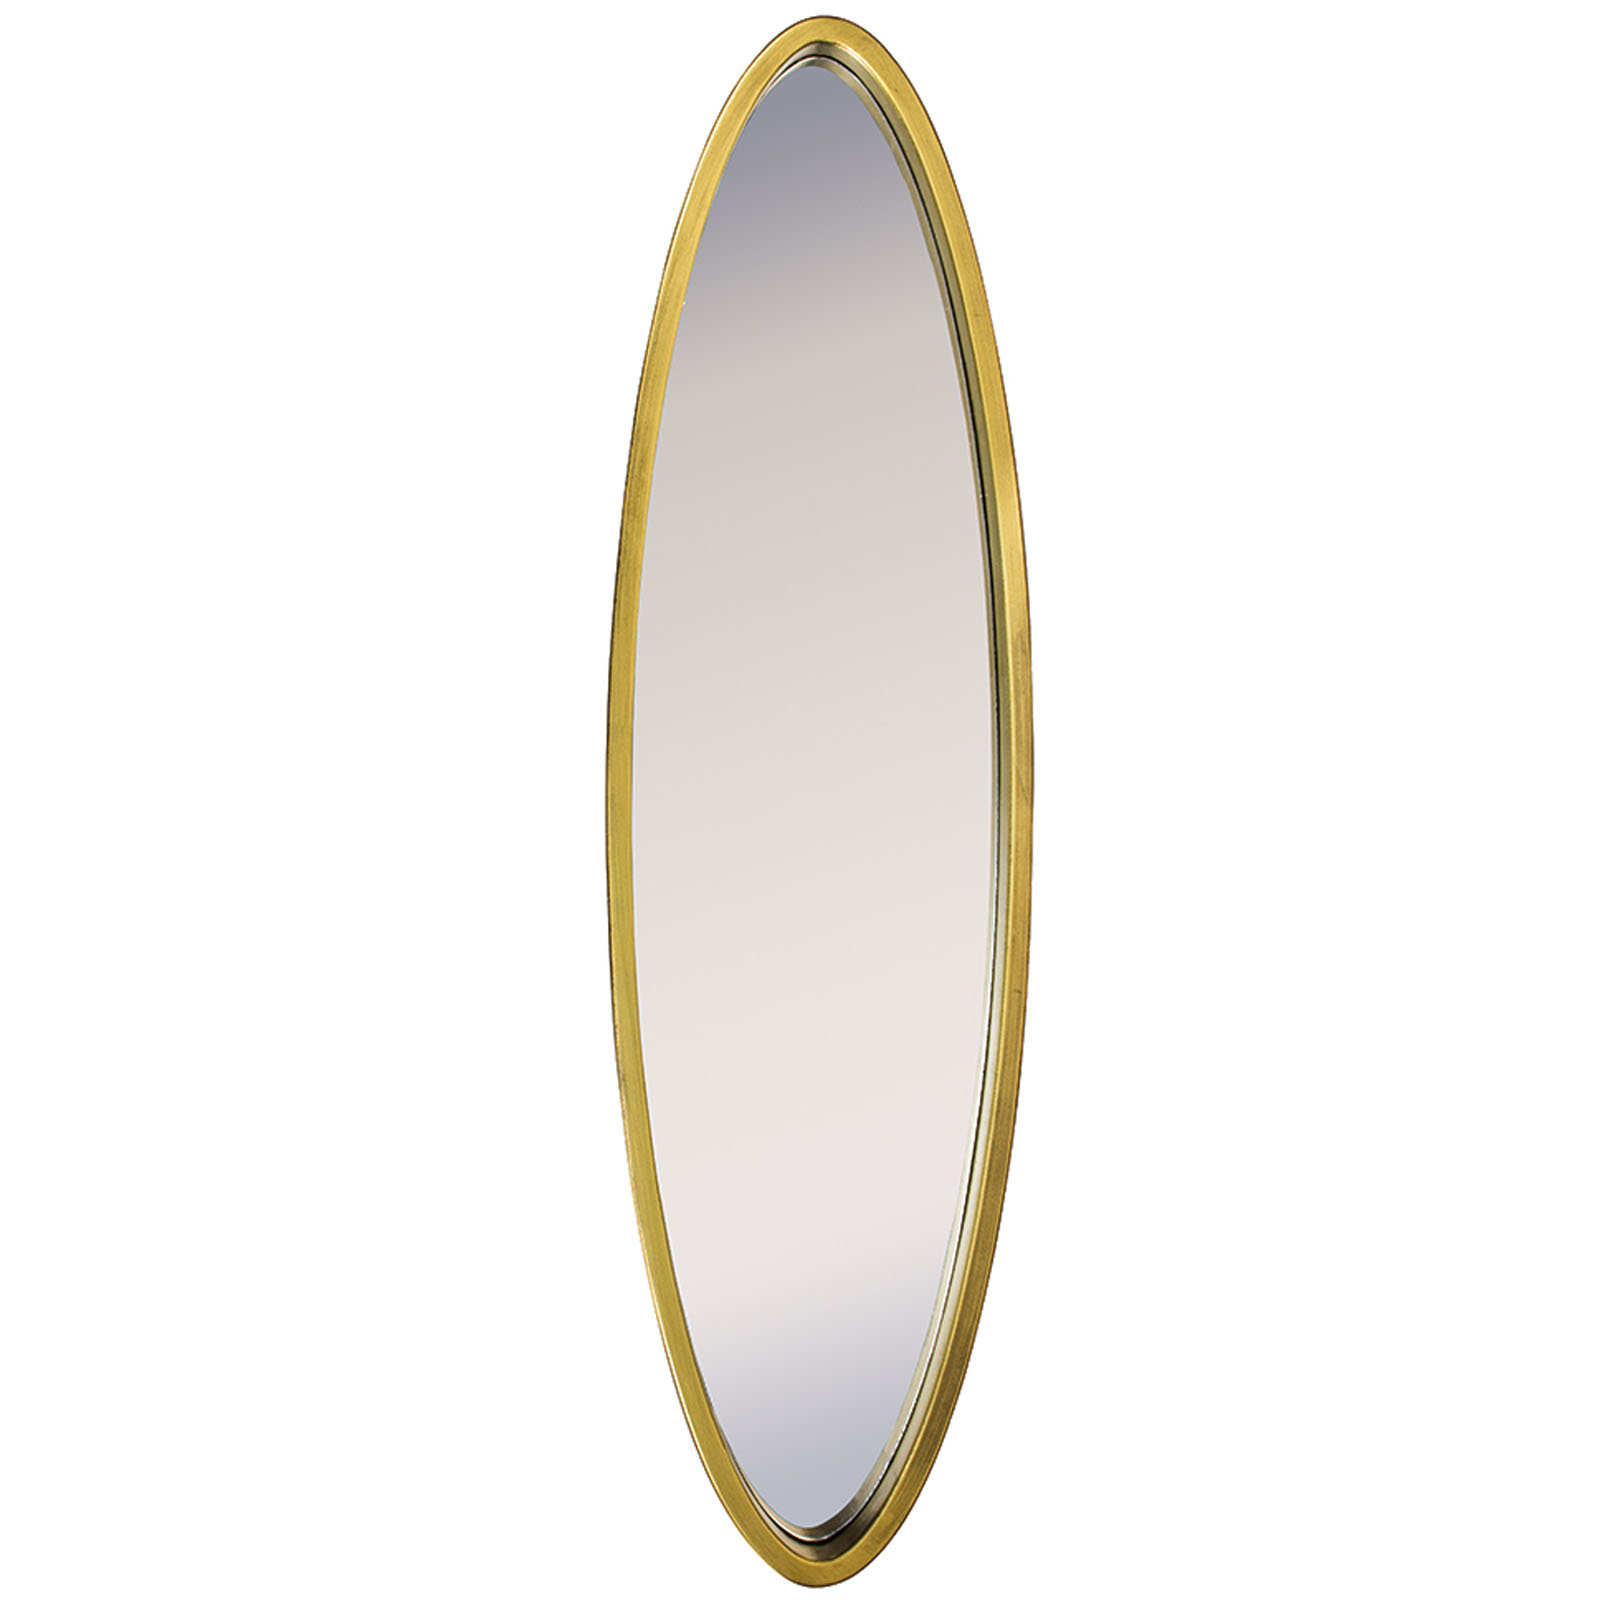 Tall Slim Gold Oval Wall Mirror Interior Flair